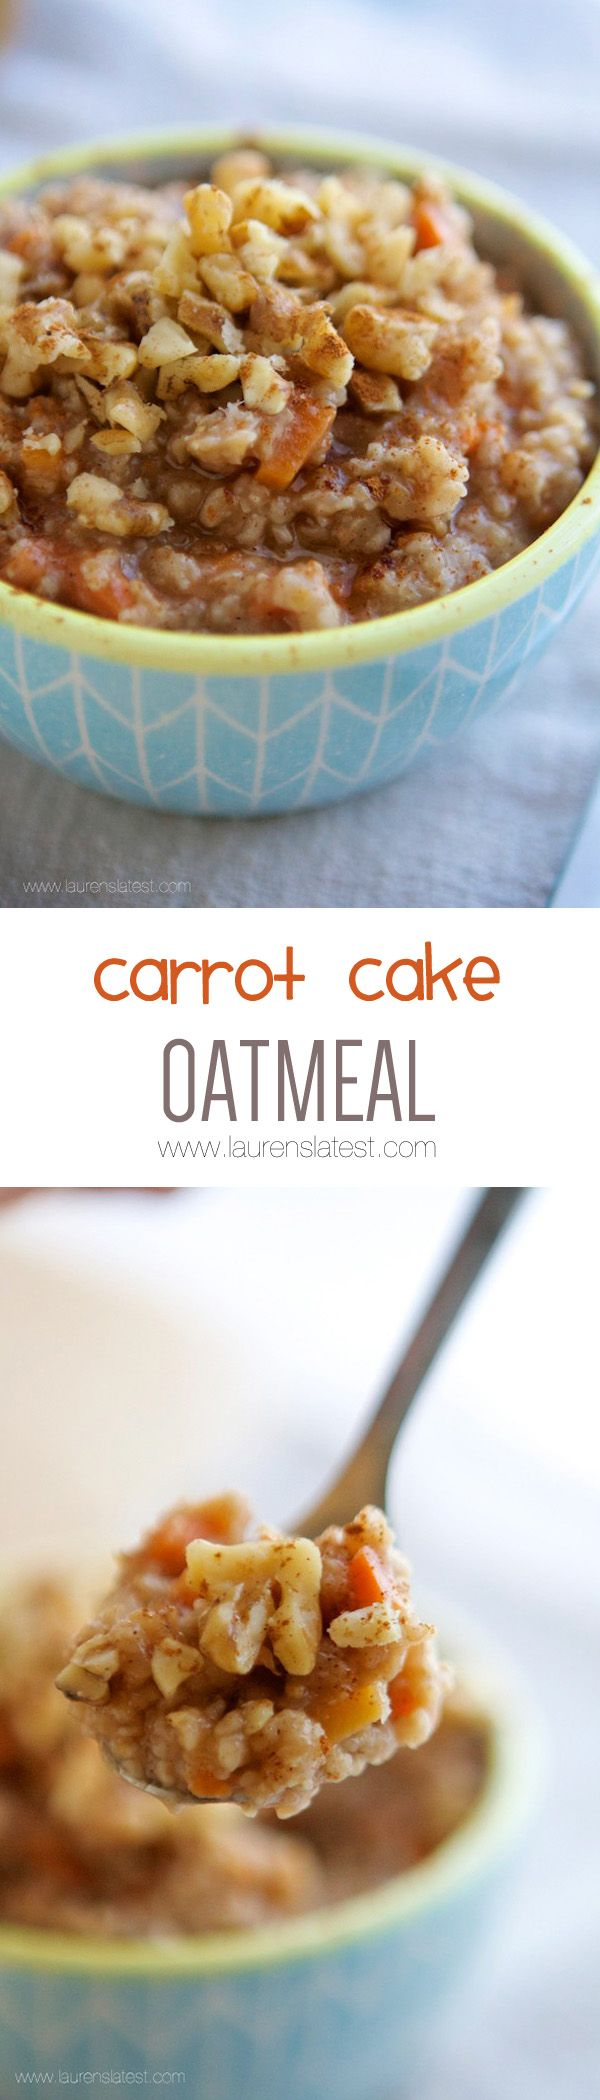 Carrot Cake Oatmeal... Start the day off with this nutritious bowl of goodness!